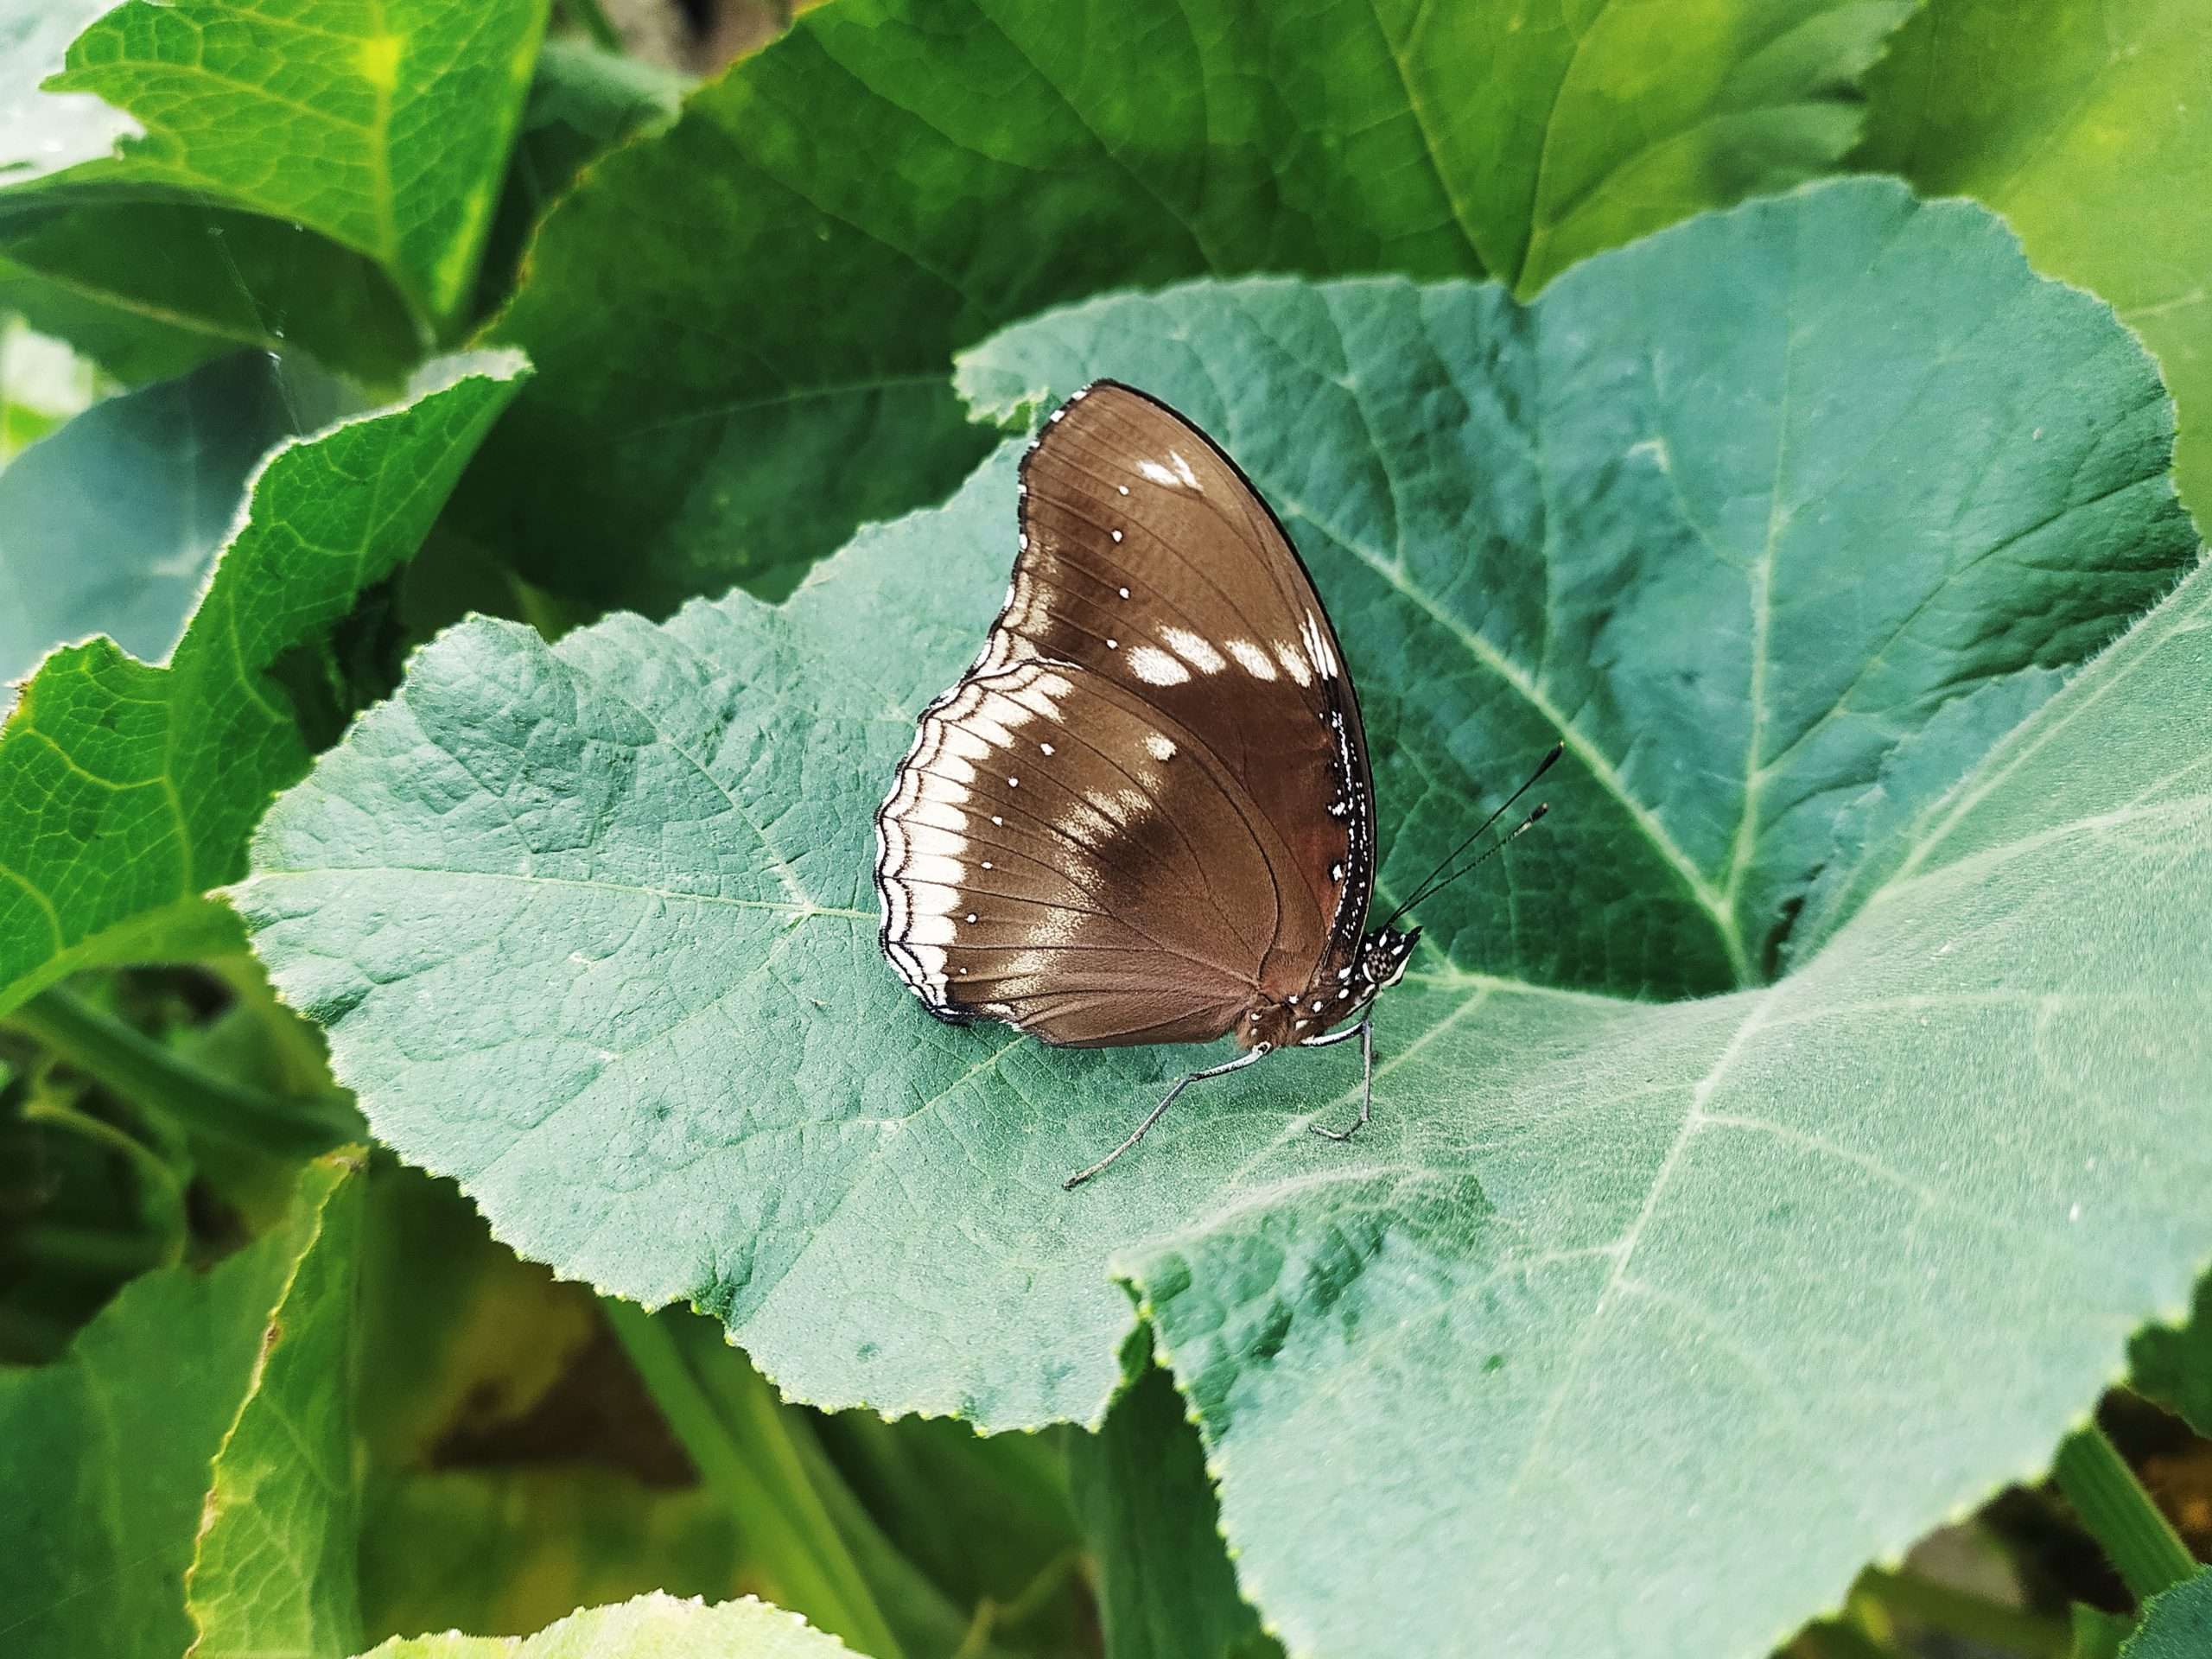 A butterfly on leaf